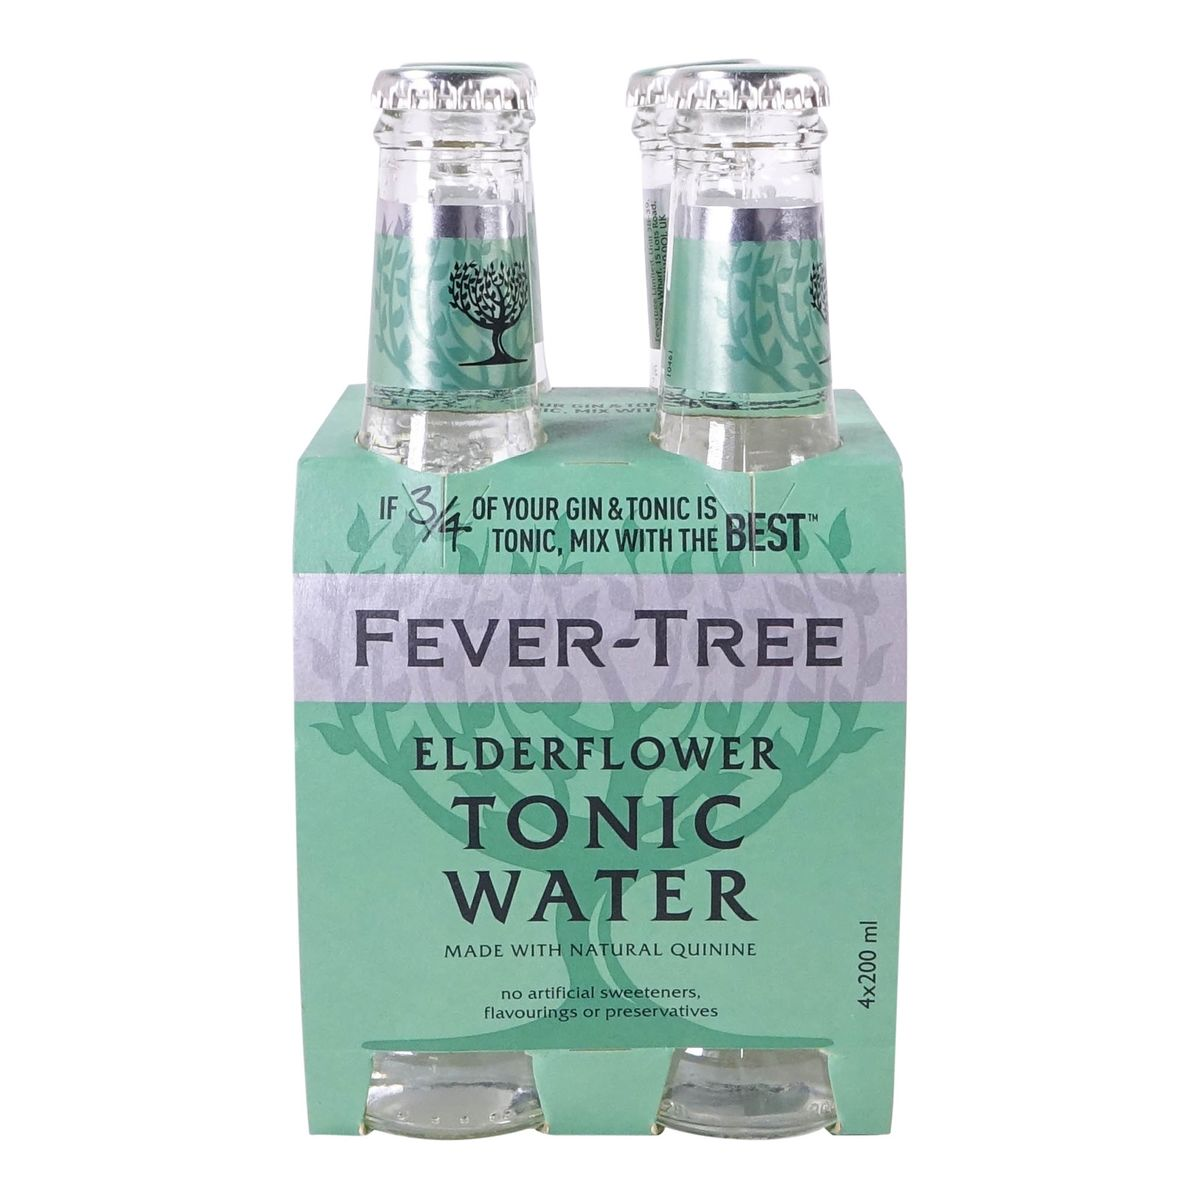 Fever Tree Elderflower Tonic (4-pack)